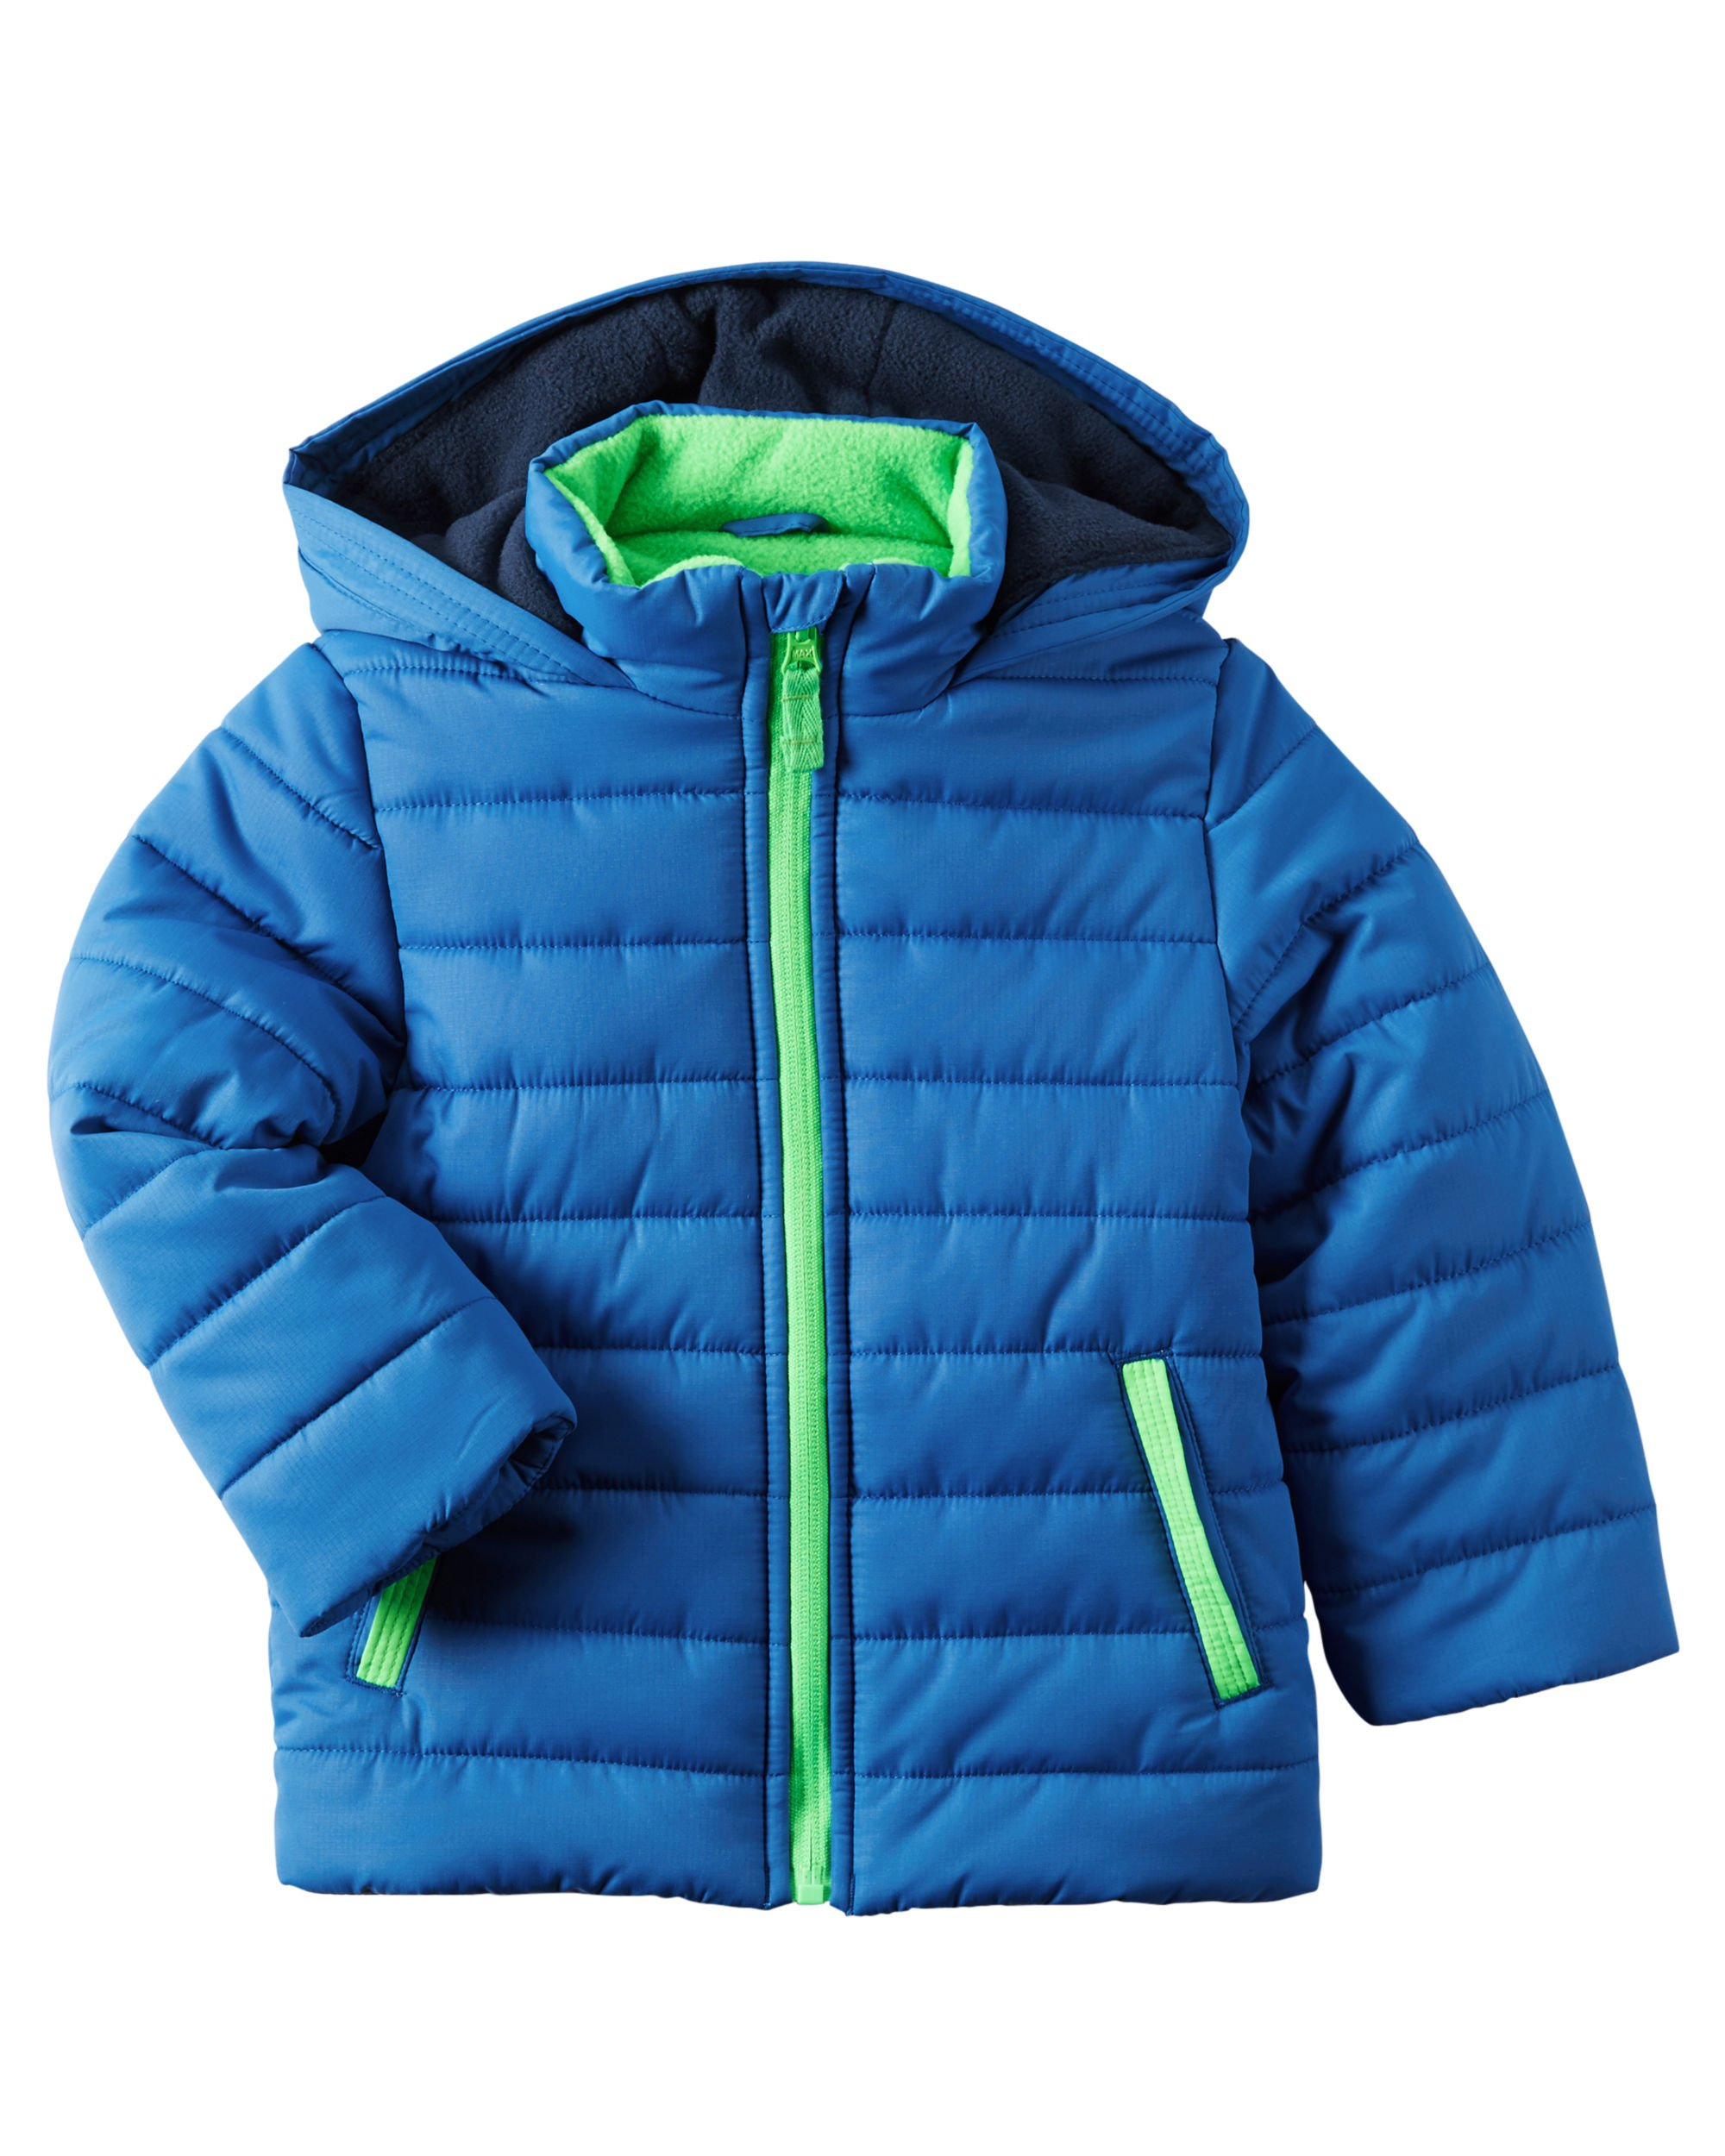 Carter's Baby Boys Fleece-Lined Puffer Jacket (24 Months) by Carter's (Image #1)